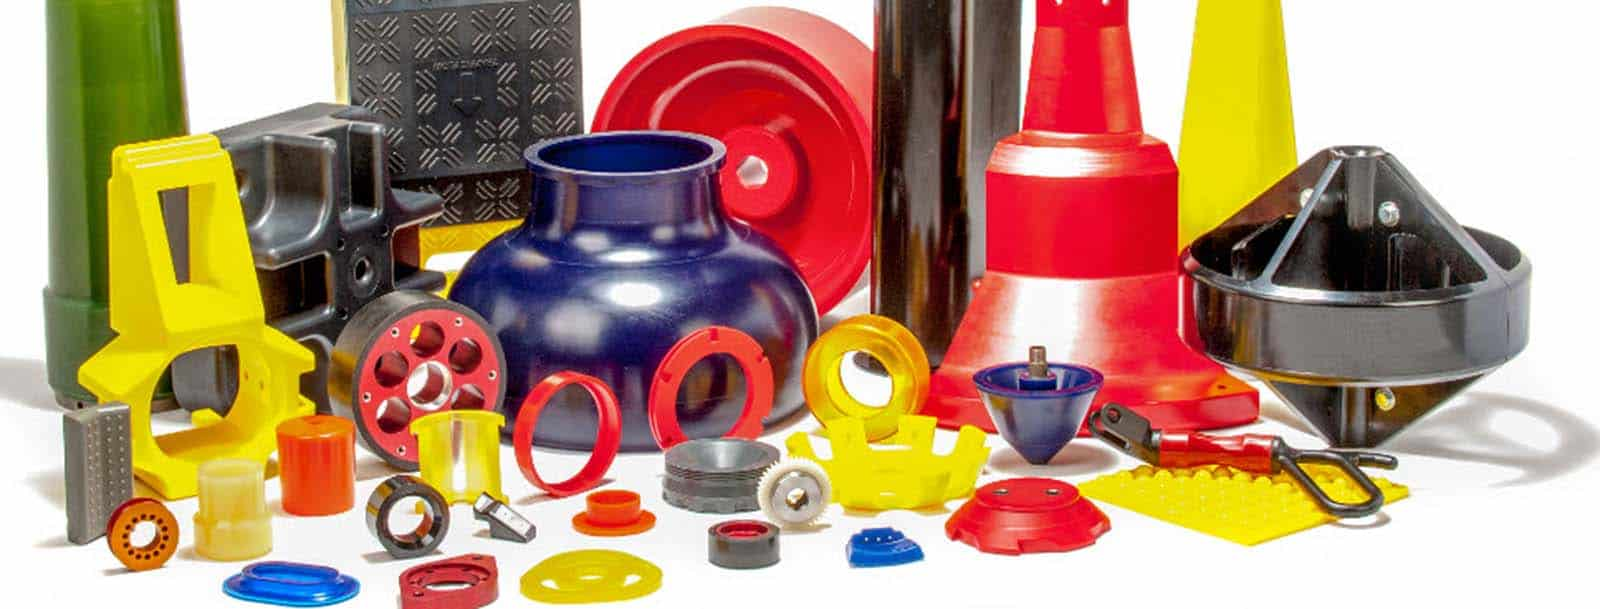 polyurethane moulded components